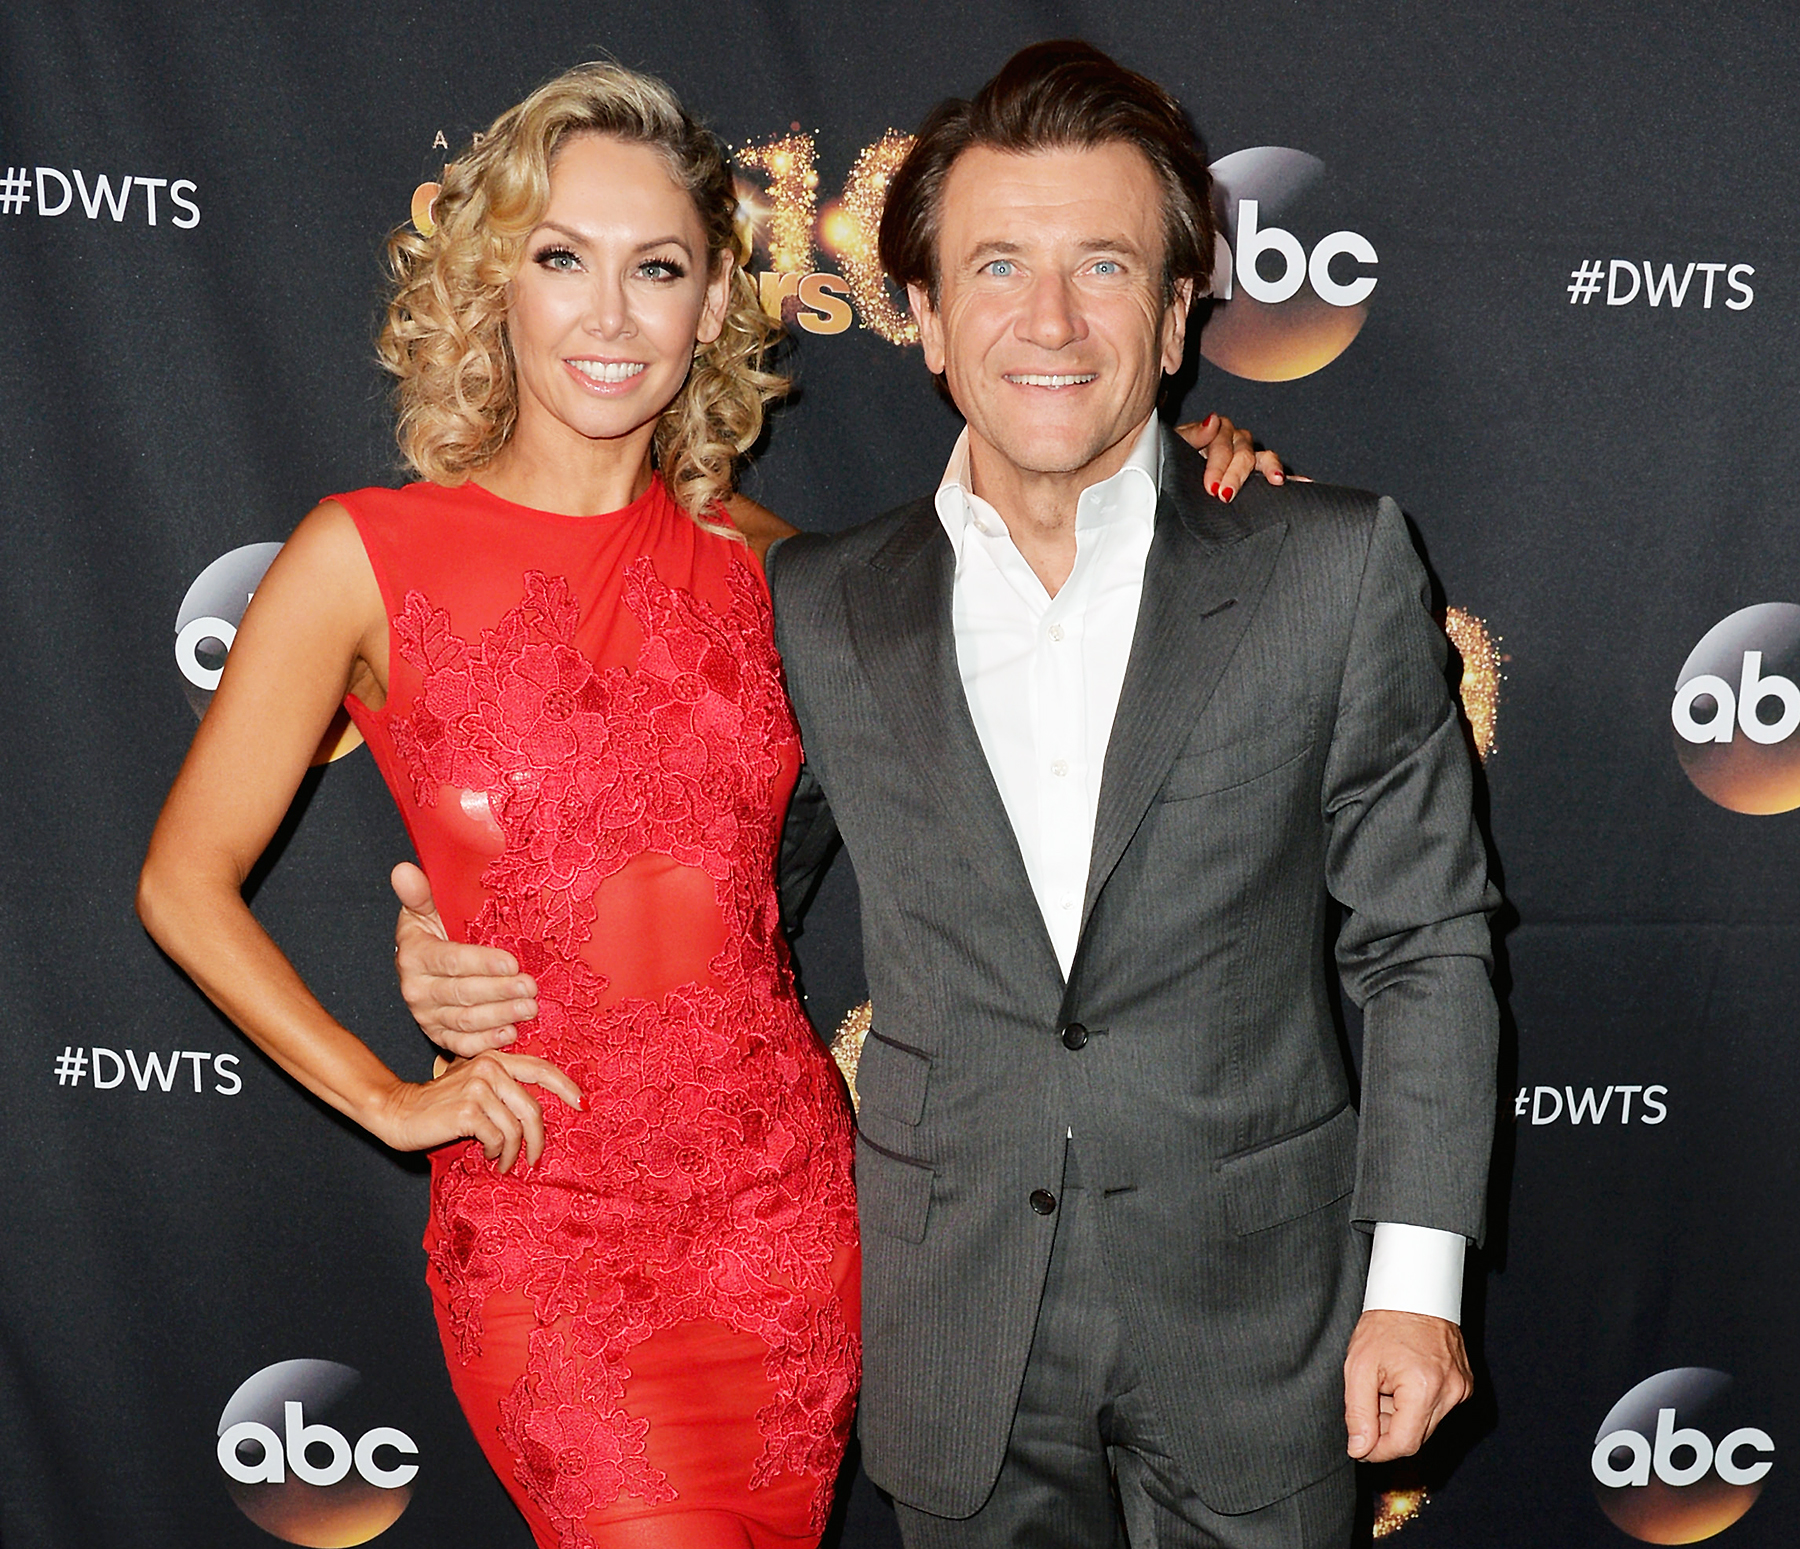 DWTS' Kym Johnson & Robert Herjavec Are Expecting Twins!